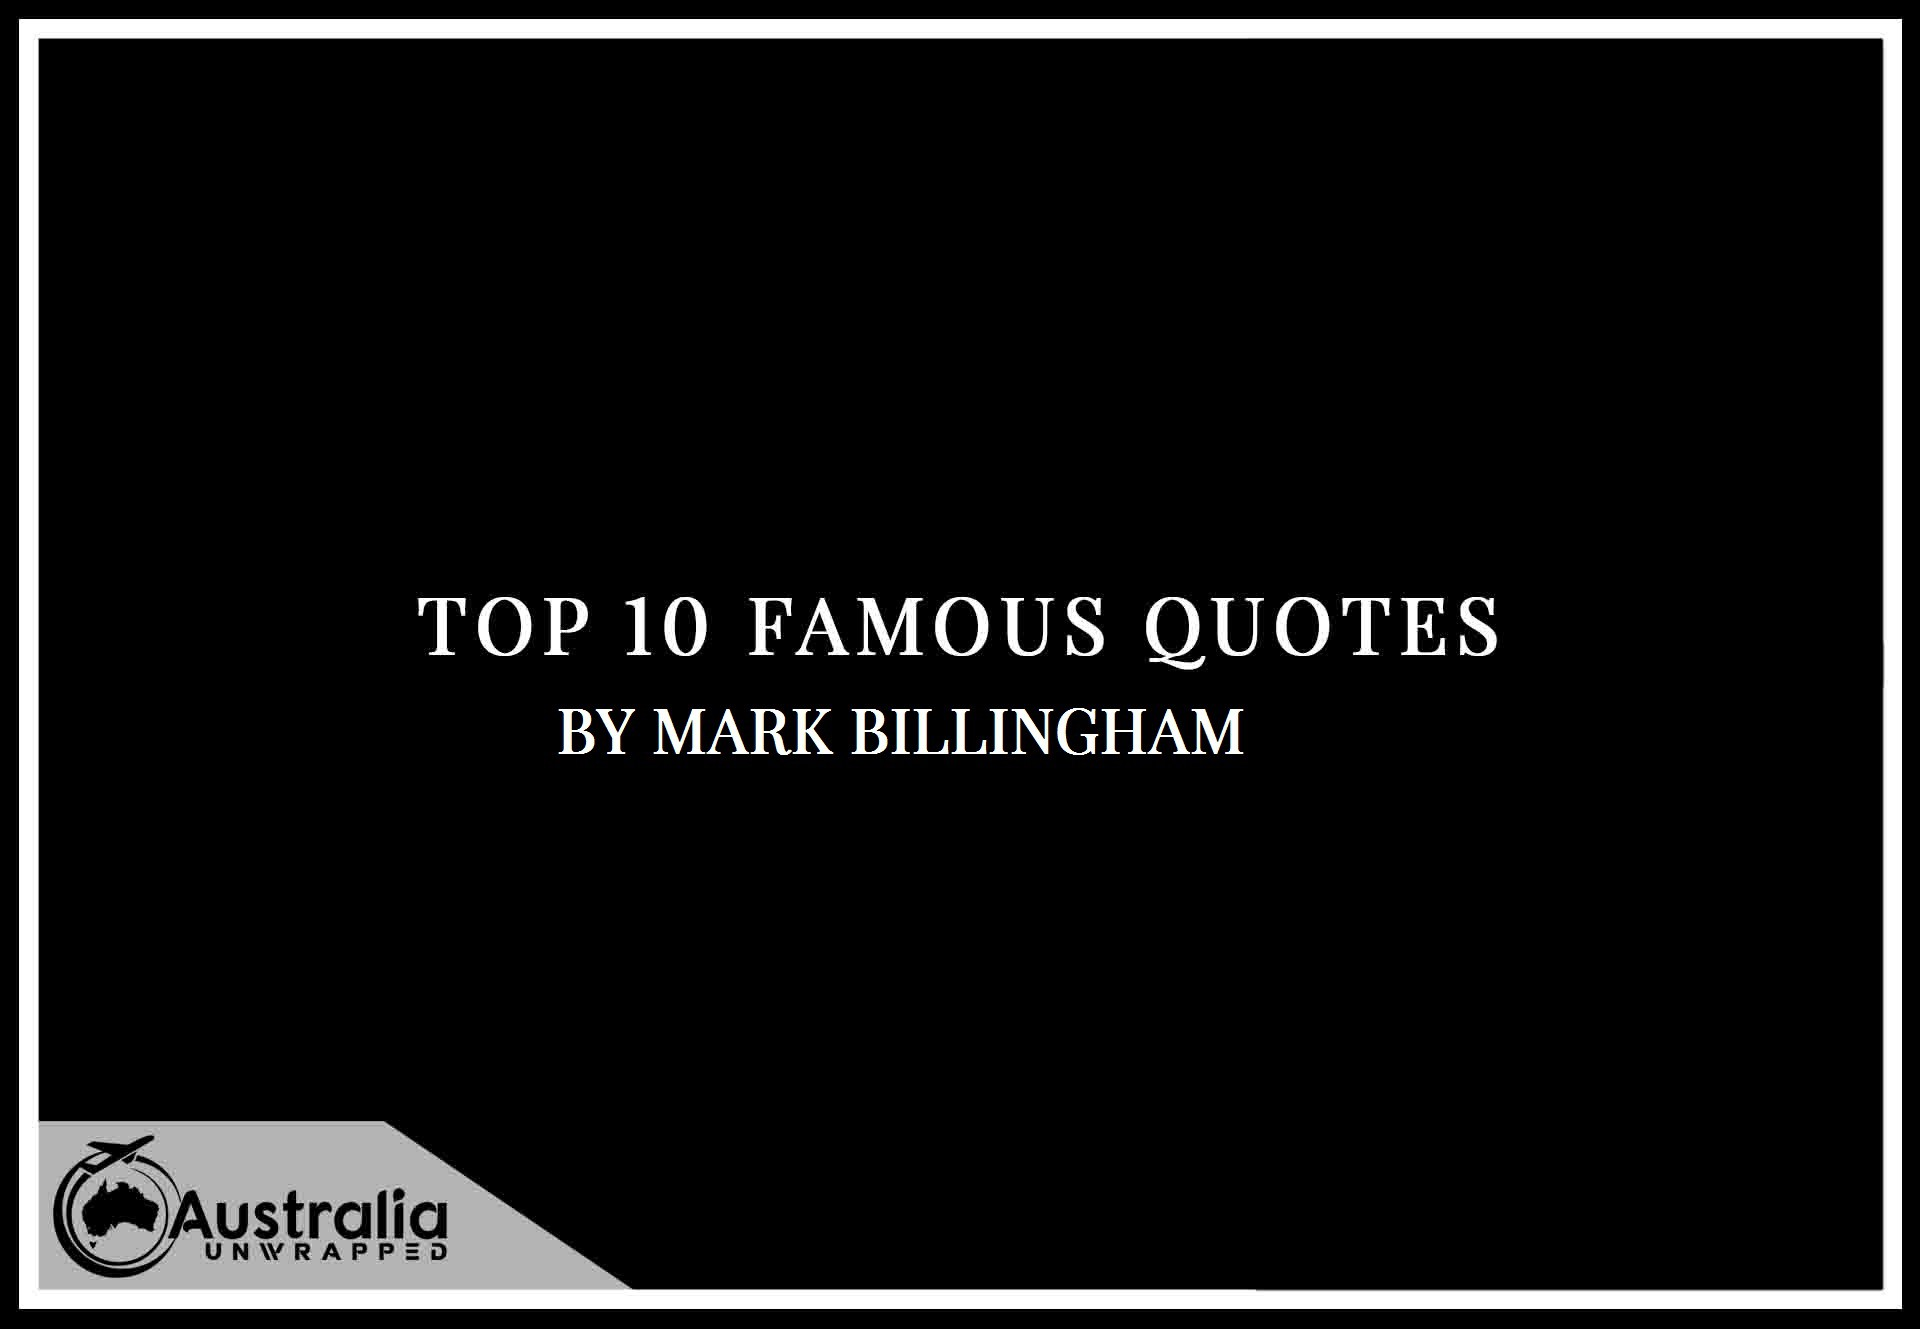 Mark Billingham's Top 10 Popular and Famous Quotes